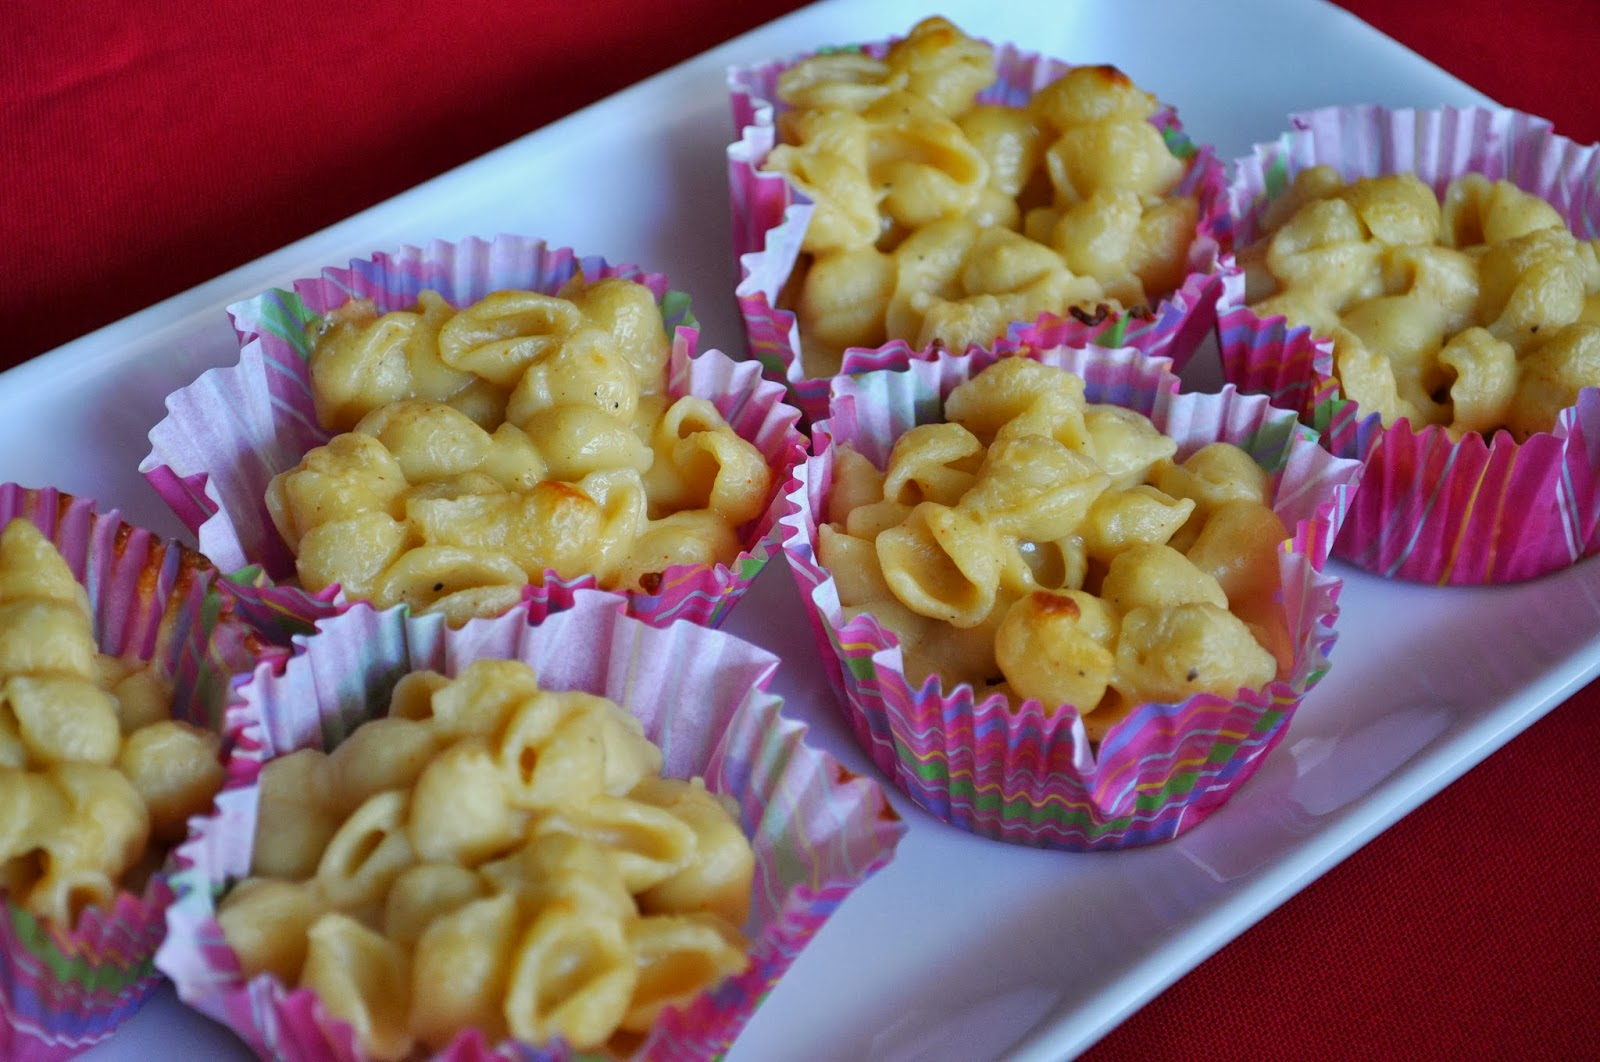 Our Italian Kitchen: Macaroni and Cheese Cupcakes